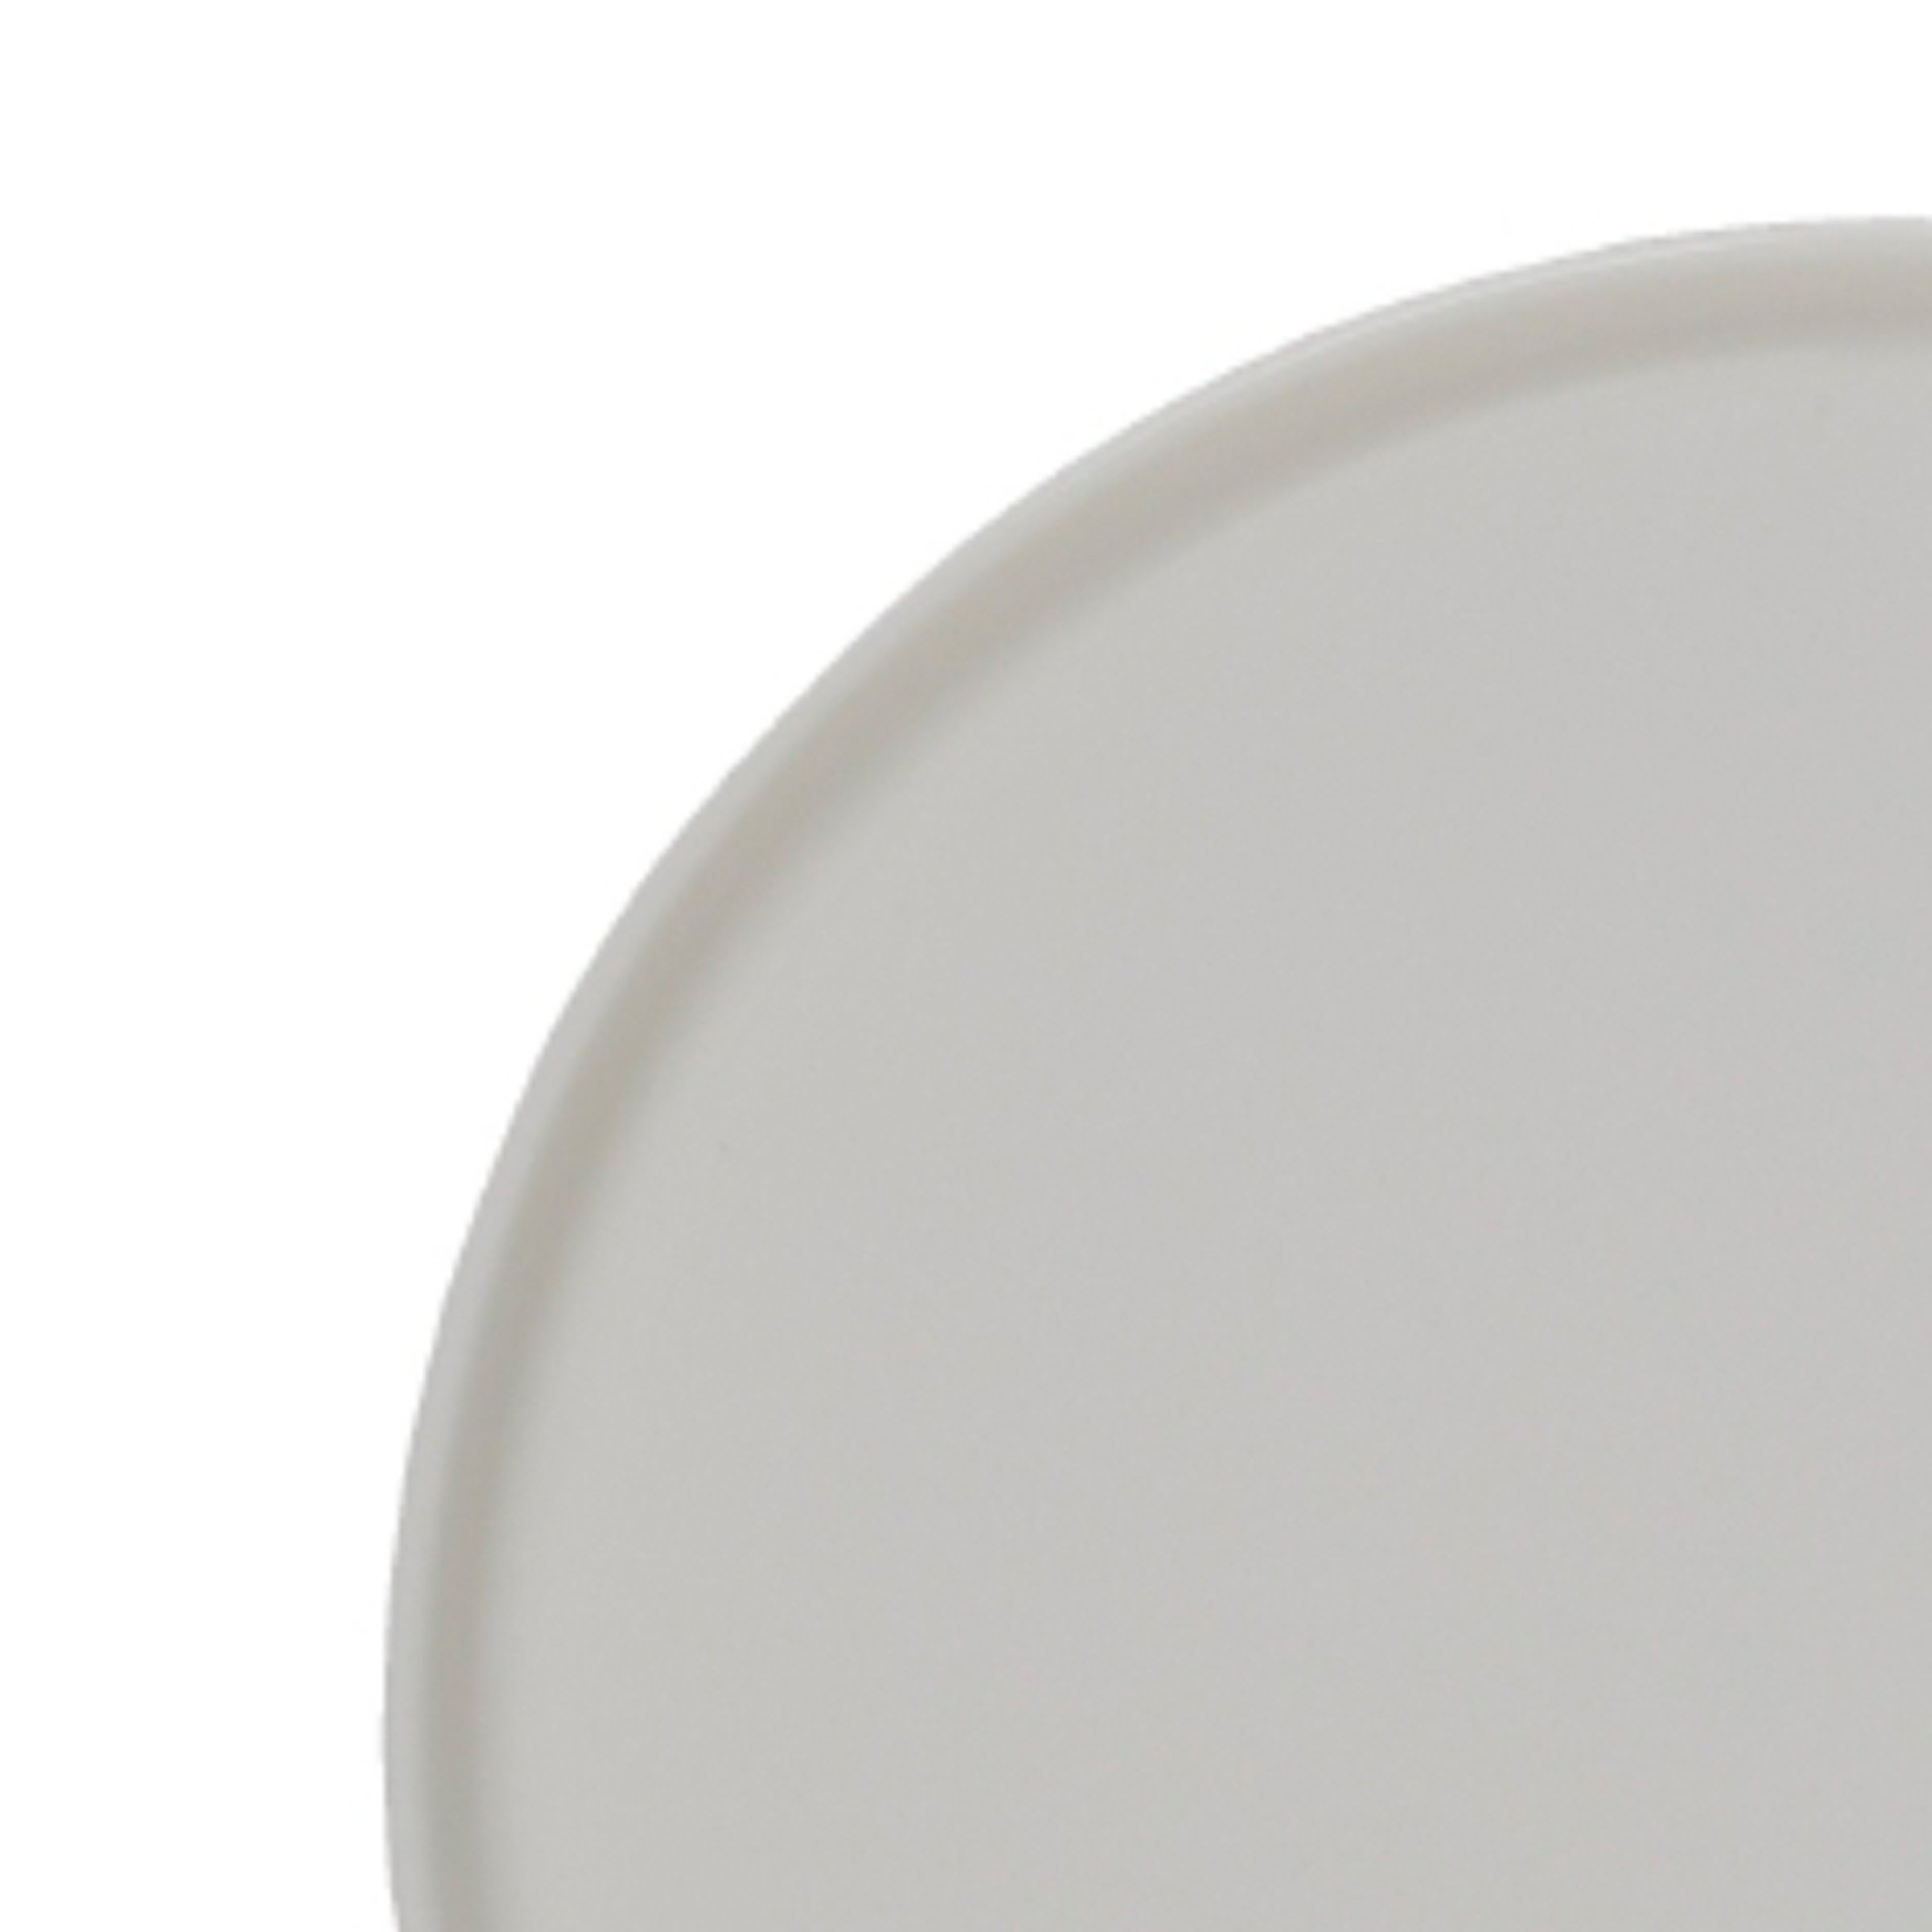 Mikasa Dine3 3-Piece Porcelain Place Setting, White, Service for 1 by Mikasa (Image #2)